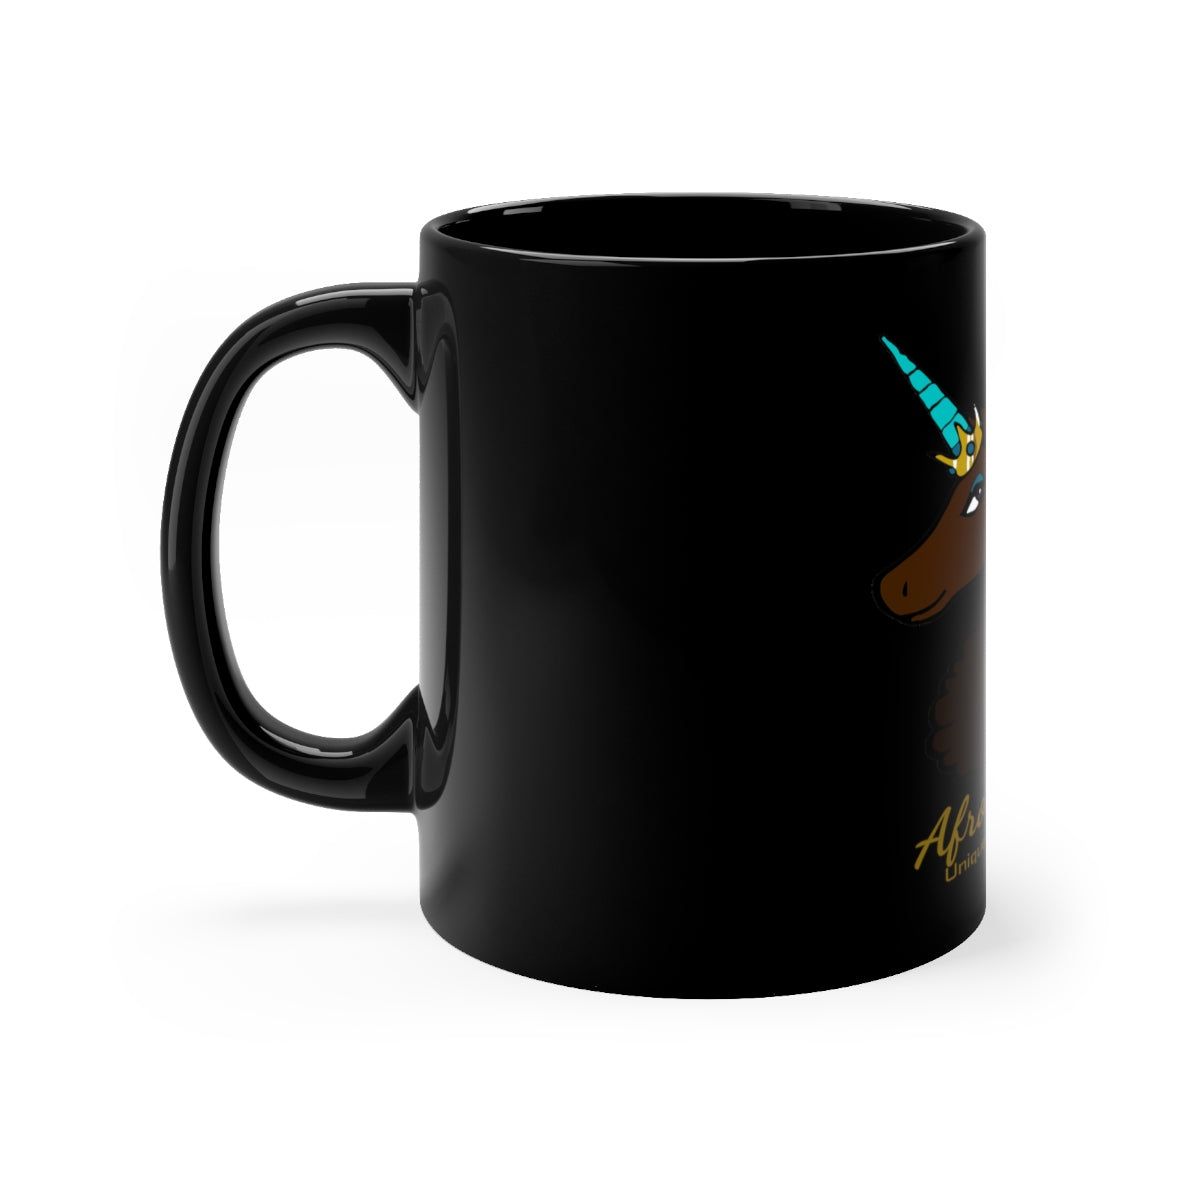 Afro Unicorn Black Mug - Mocha- Afro Unicorn